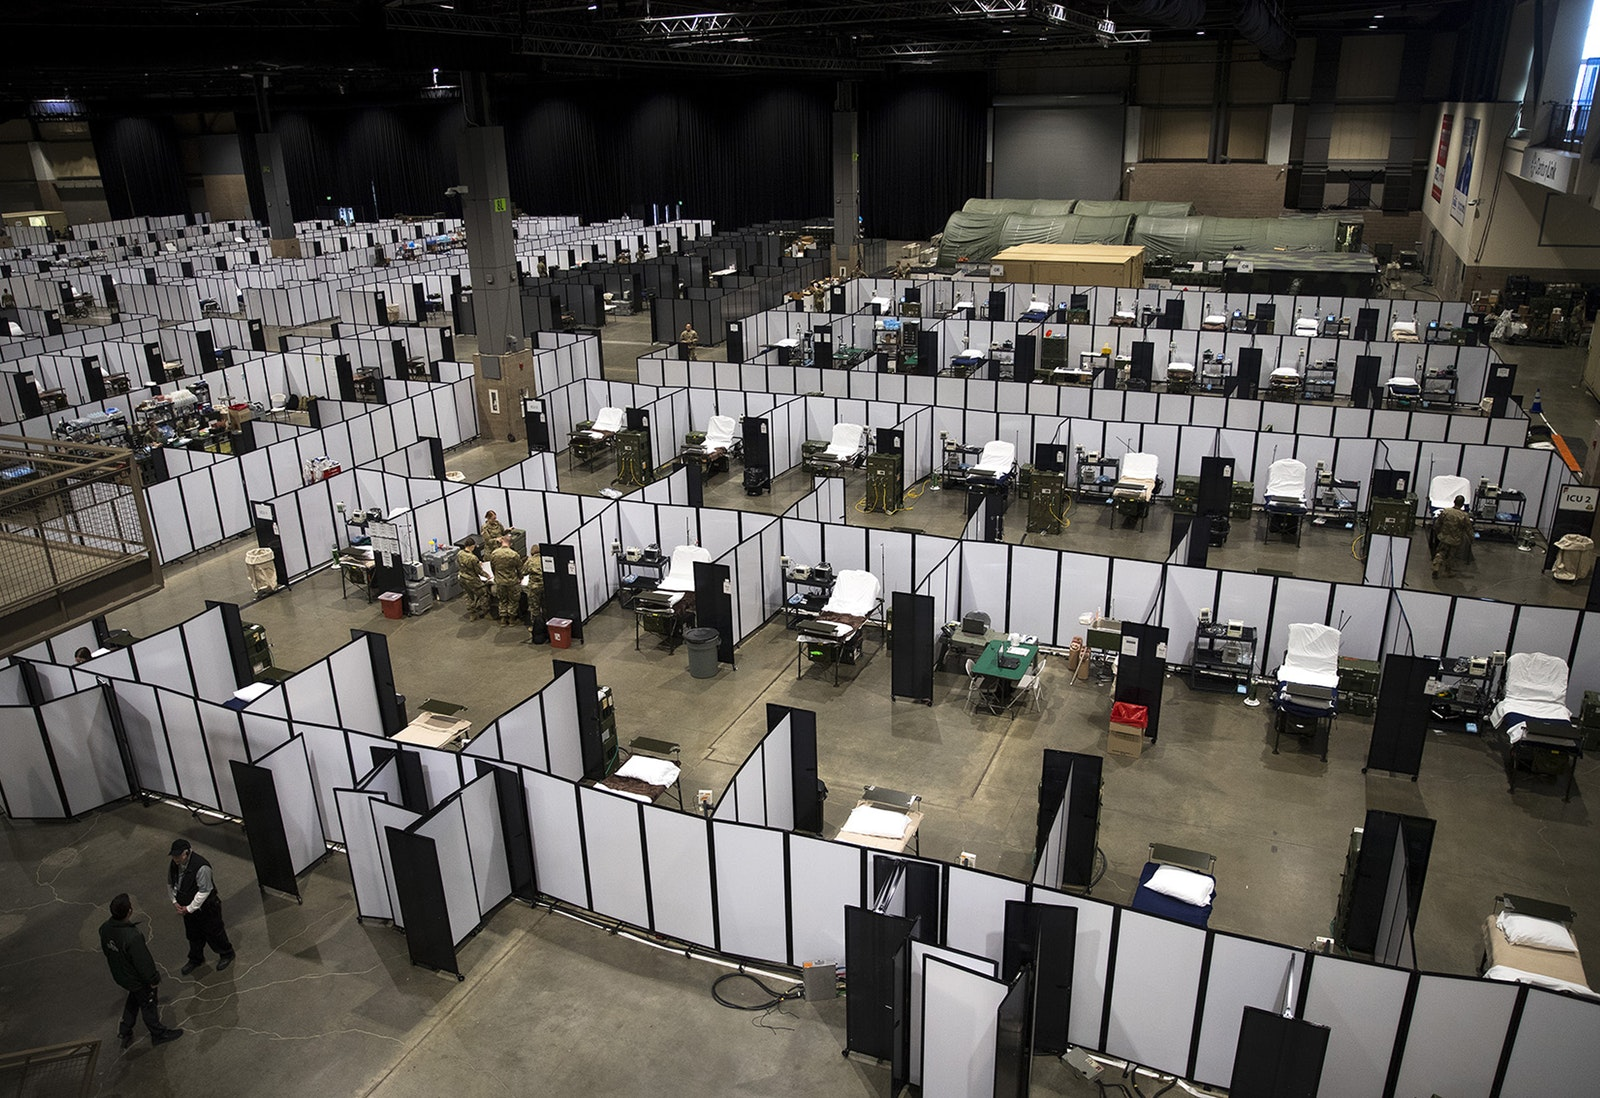 U.S. Army soldiers set up a military field hospital inside CenturyLink Field Event Center on Sunday, April 5, 2020, in Seattle.